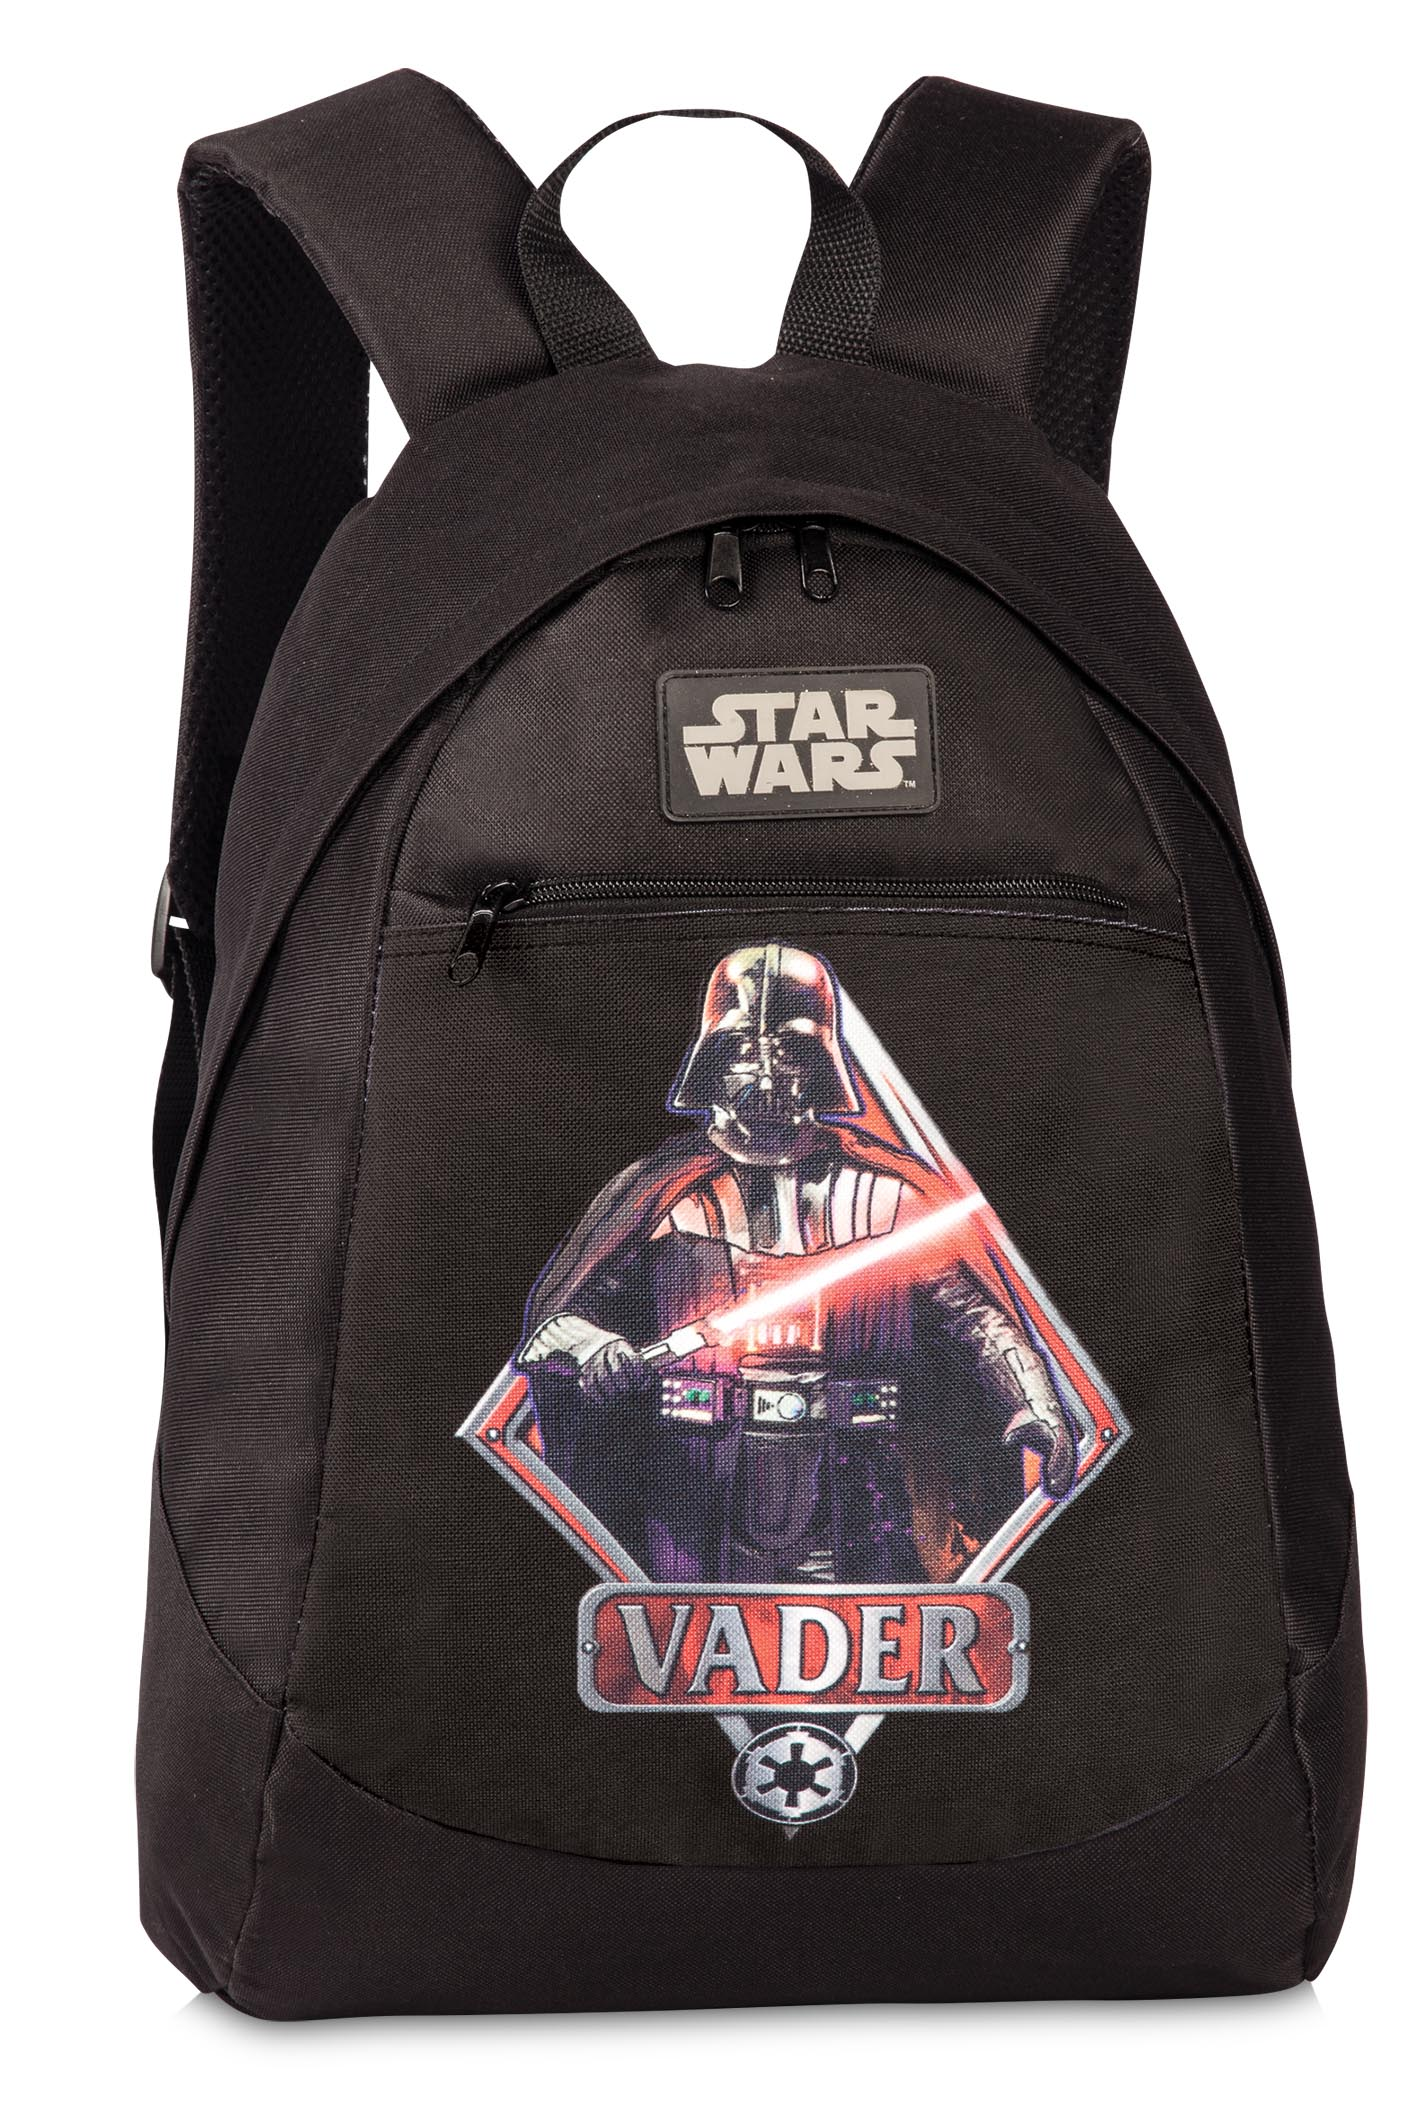 star wars kinder rucksack tasche schultertasche schuhbeutel trolley neu ebay. Black Bedroom Furniture Sets. Home Design Ideas